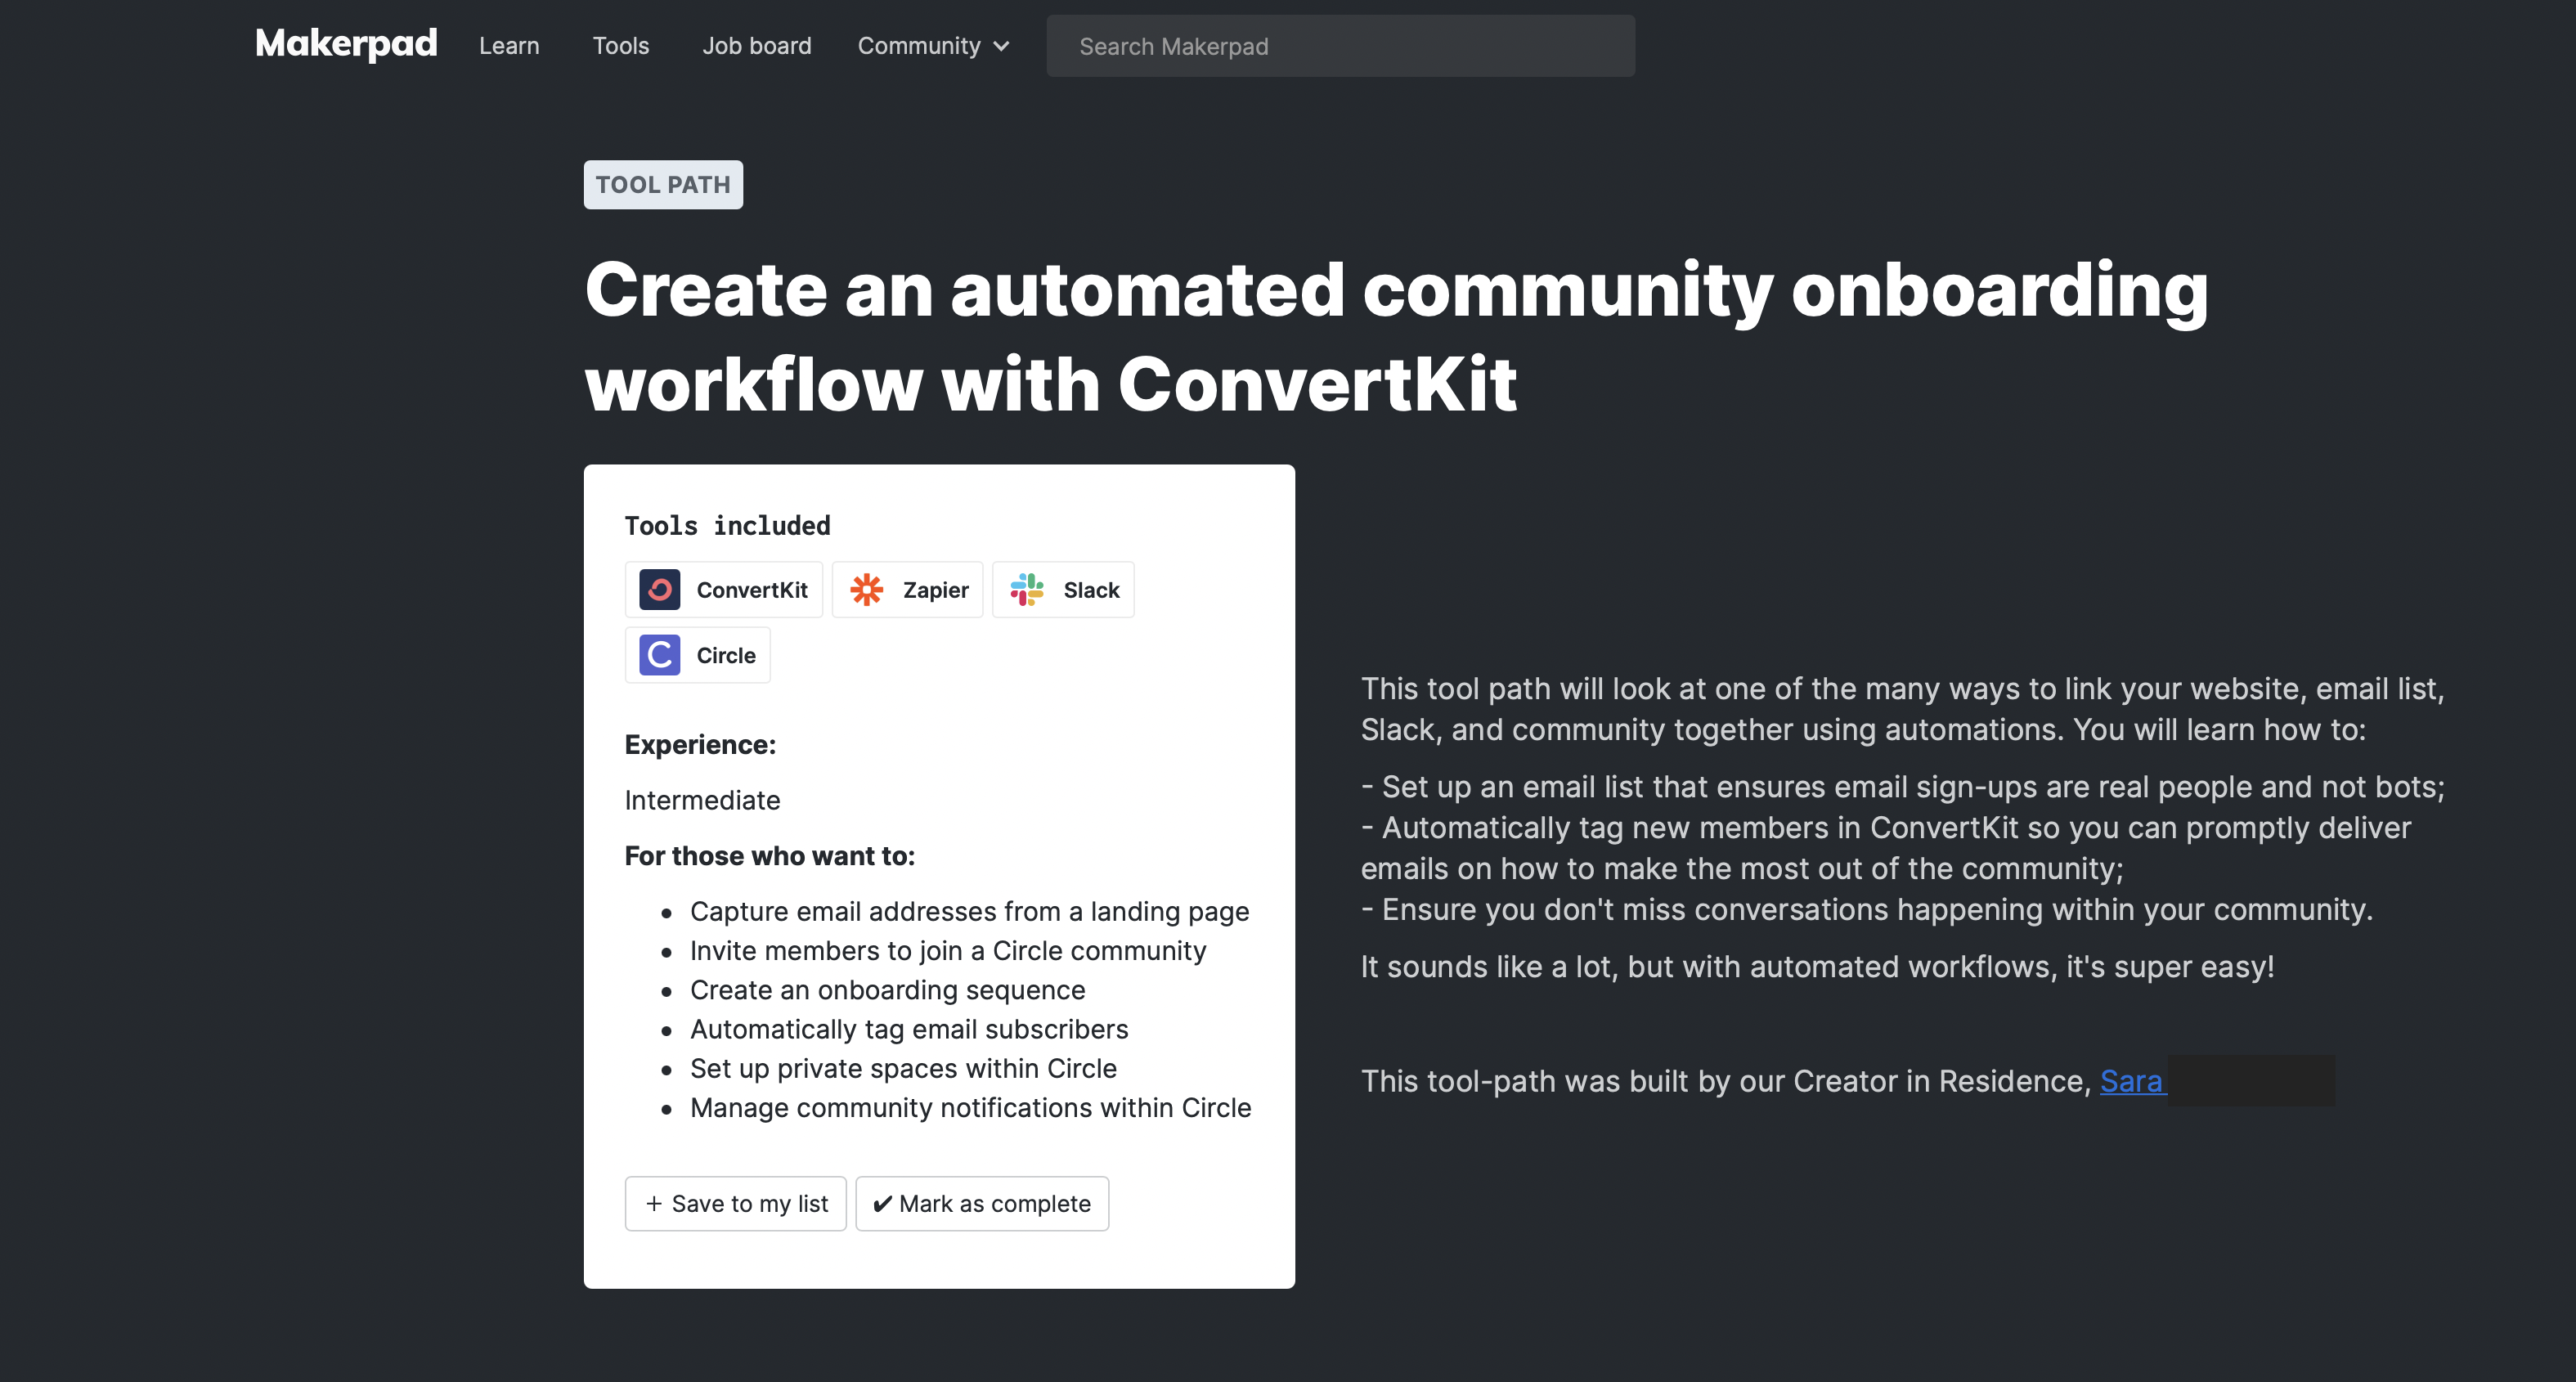 Create an automated community onboarding workflow with Convertkit